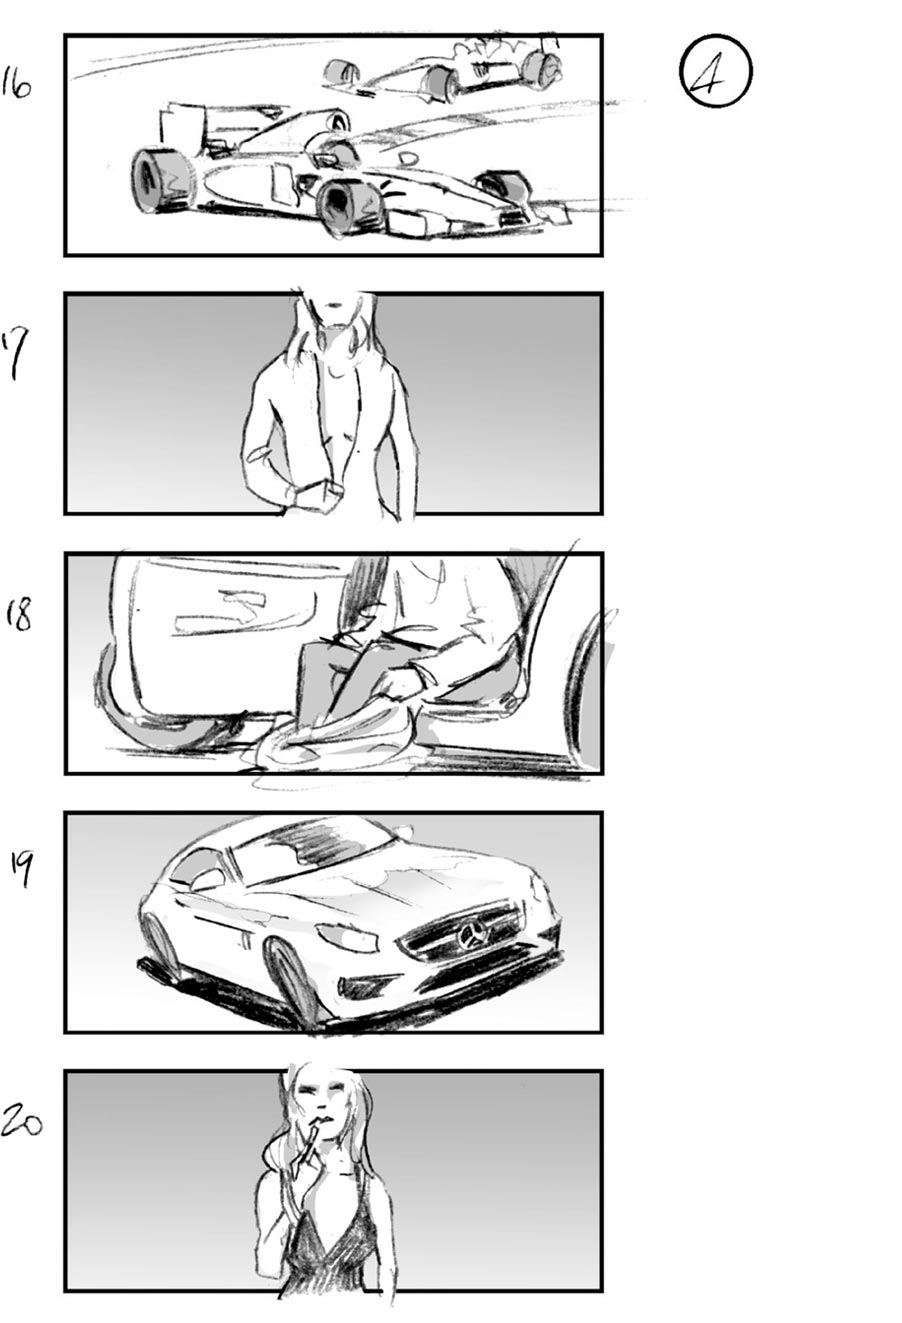 douglas ingram, storyboard art, mercedes car commercial